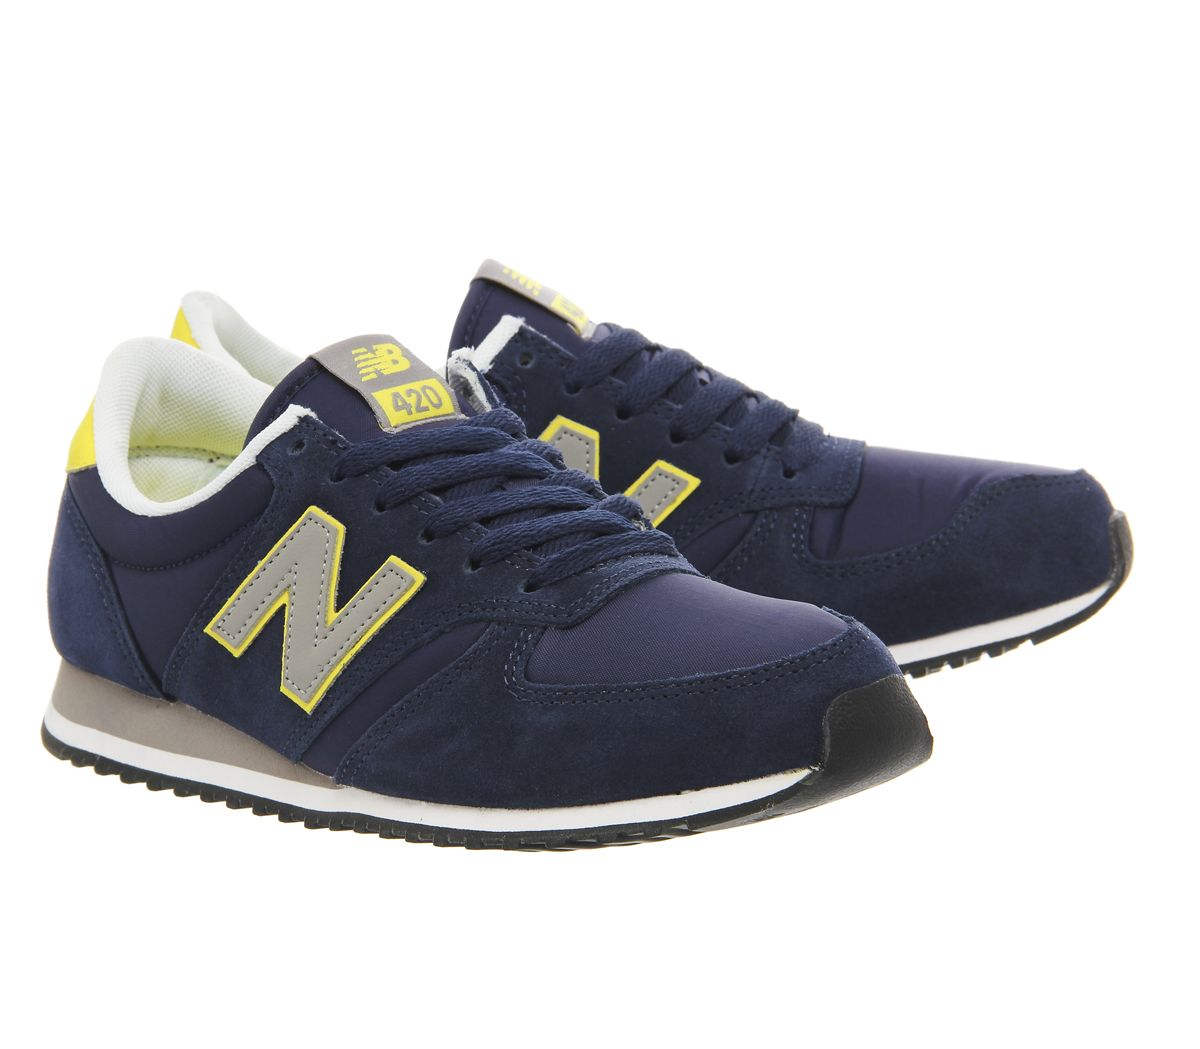 New Balance U420 Trainers Navy Yellow Grey Exclusive - Unisex Sports